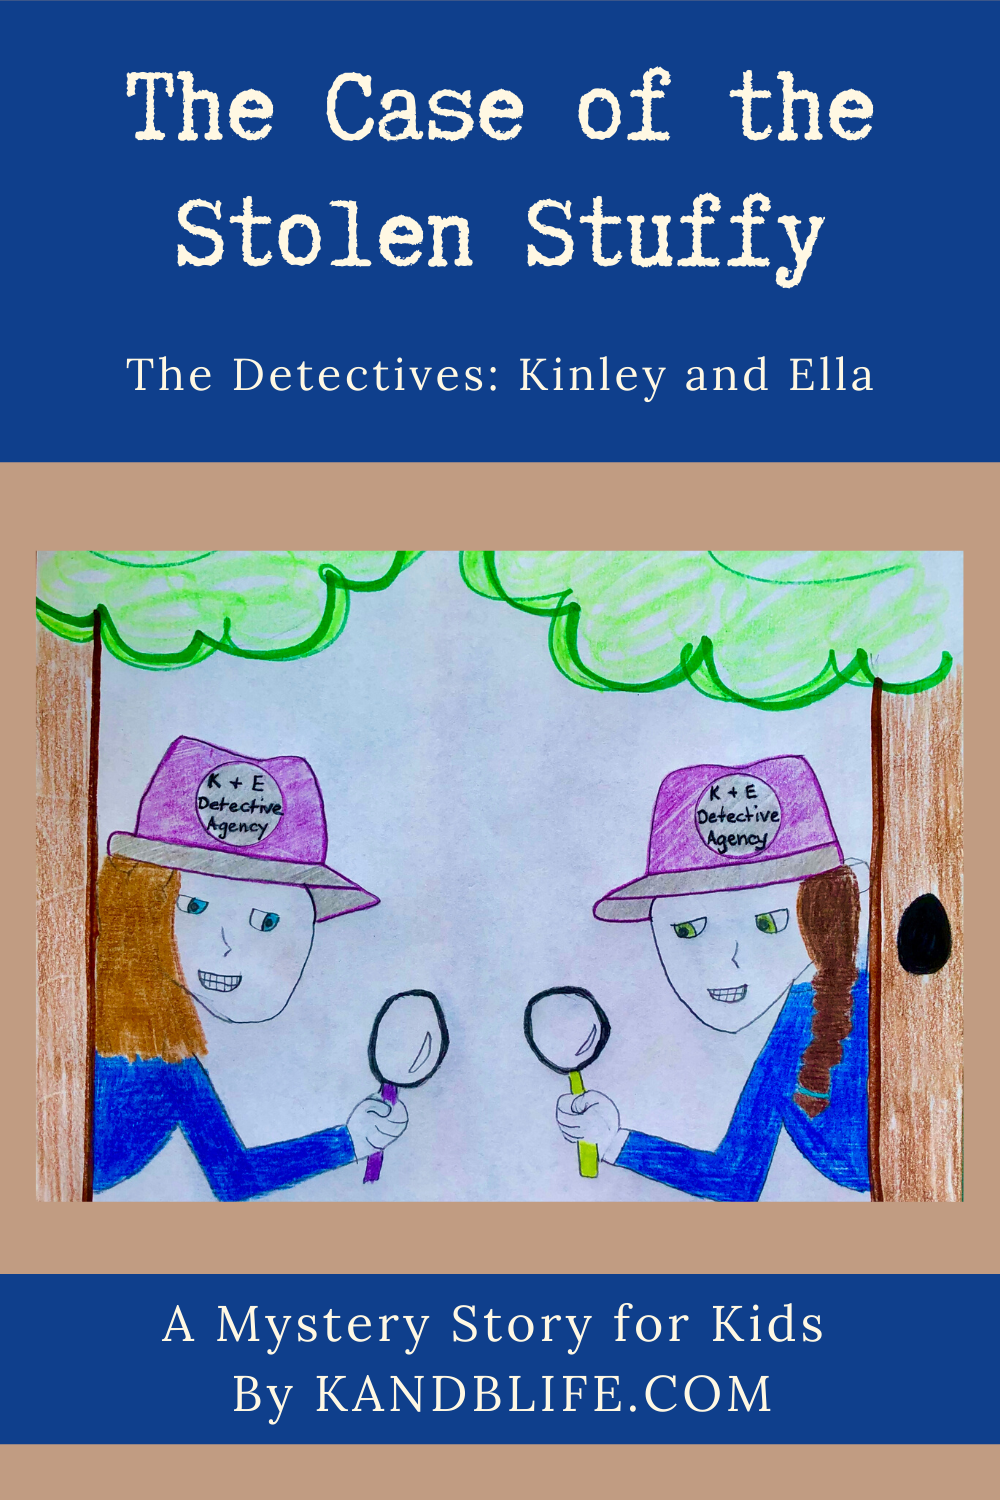 Blue and beige cover of The Case of the Stolen Stuffy. 2 girls, both wearing blue shirts are holding magnifying glasses.